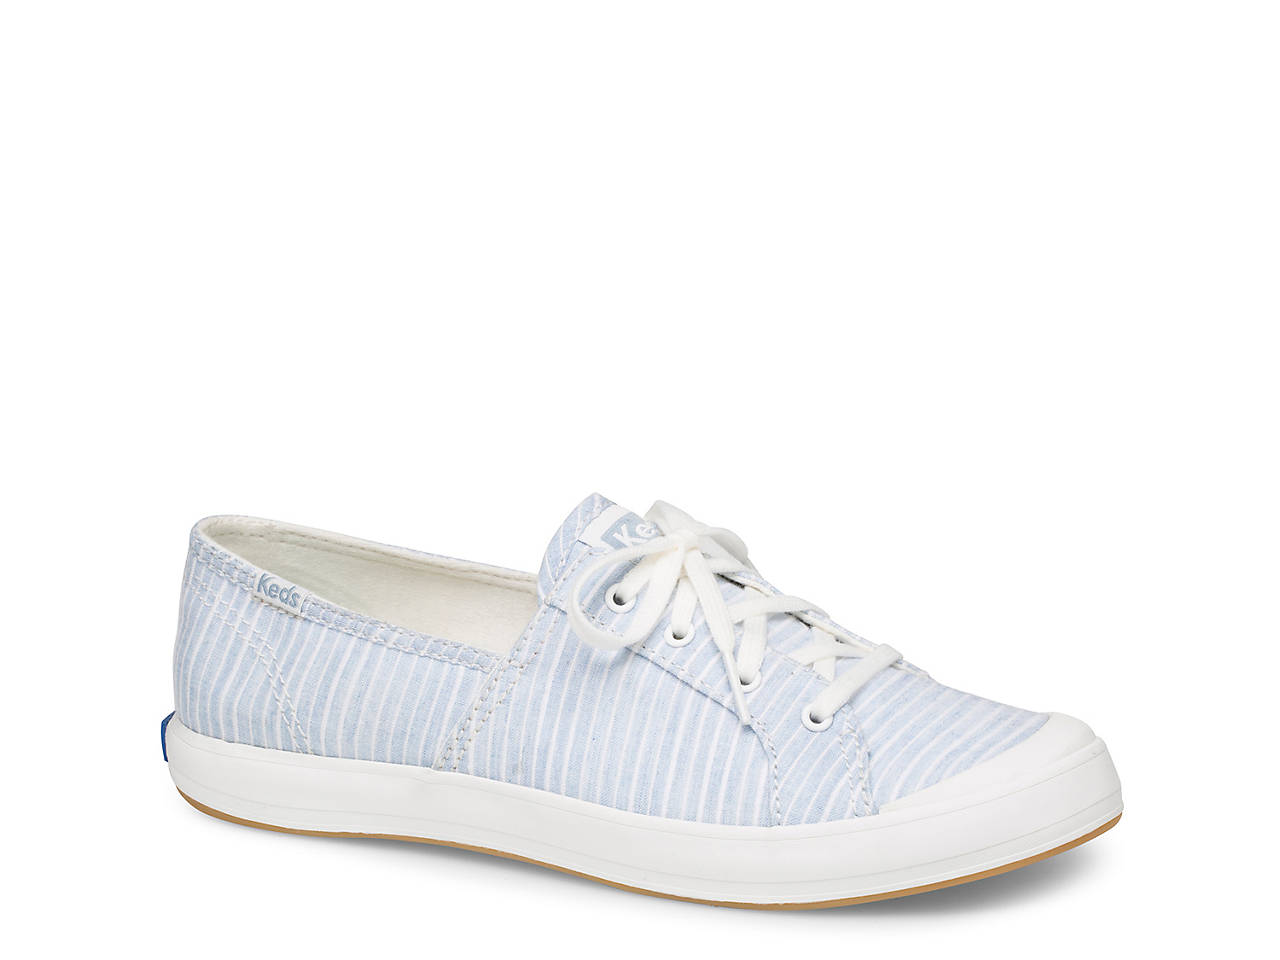 ce14aadc2b Keds Sandy Sneaker - Women s Women s Shoes